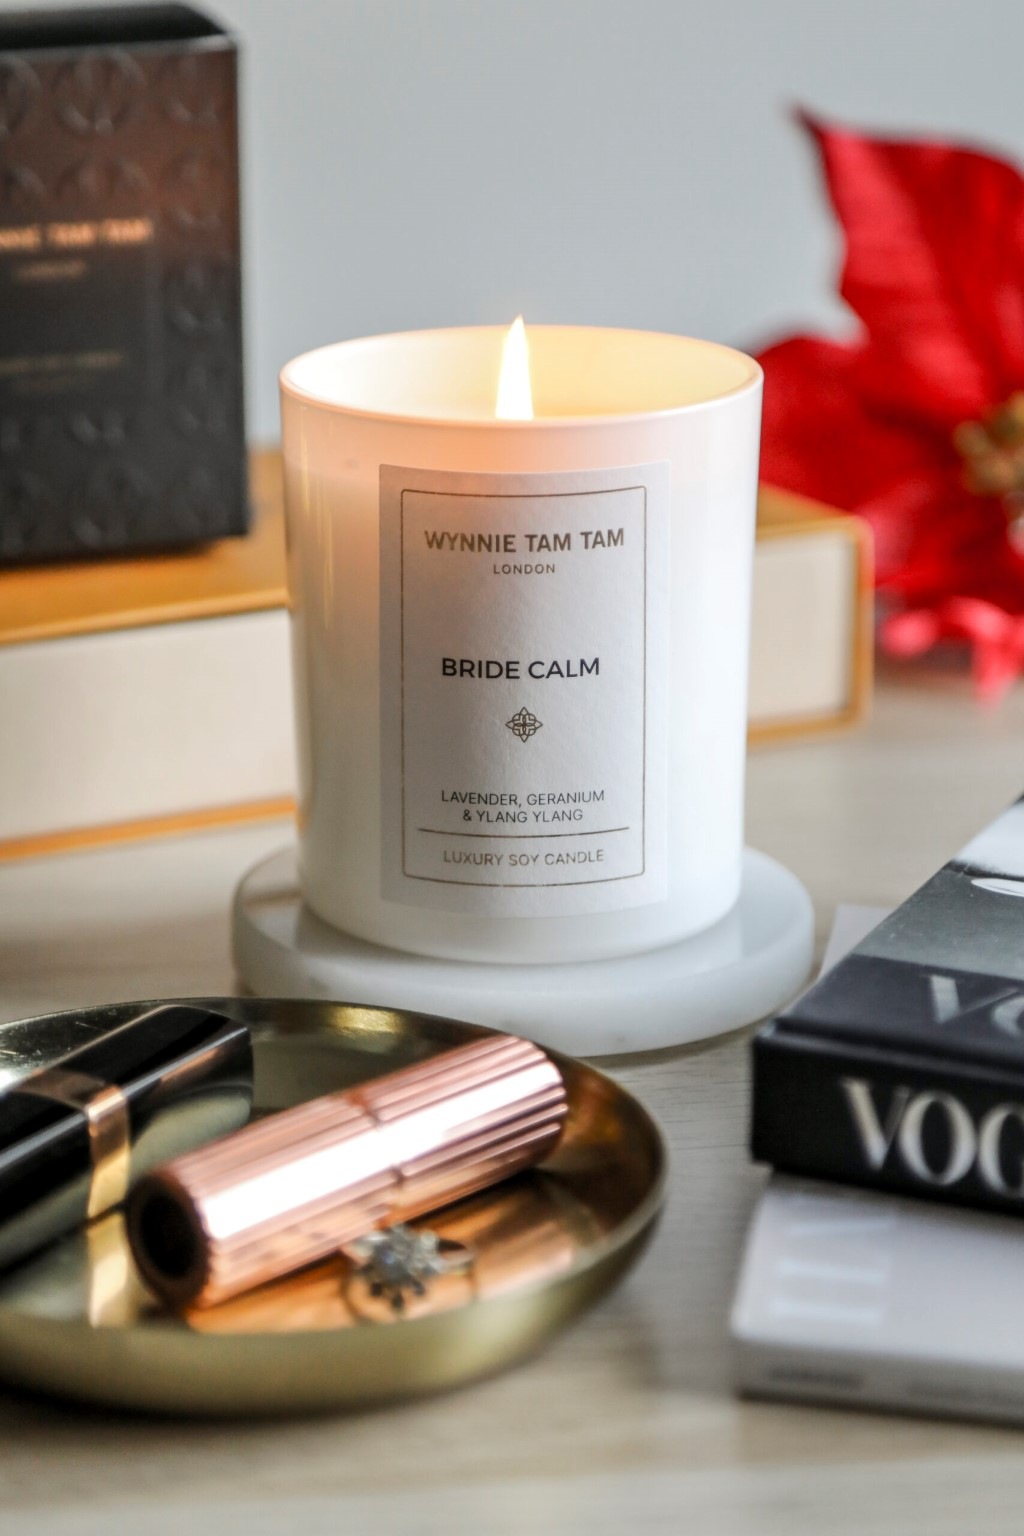 fragranced luxury candles - Wynnie Tam Tam